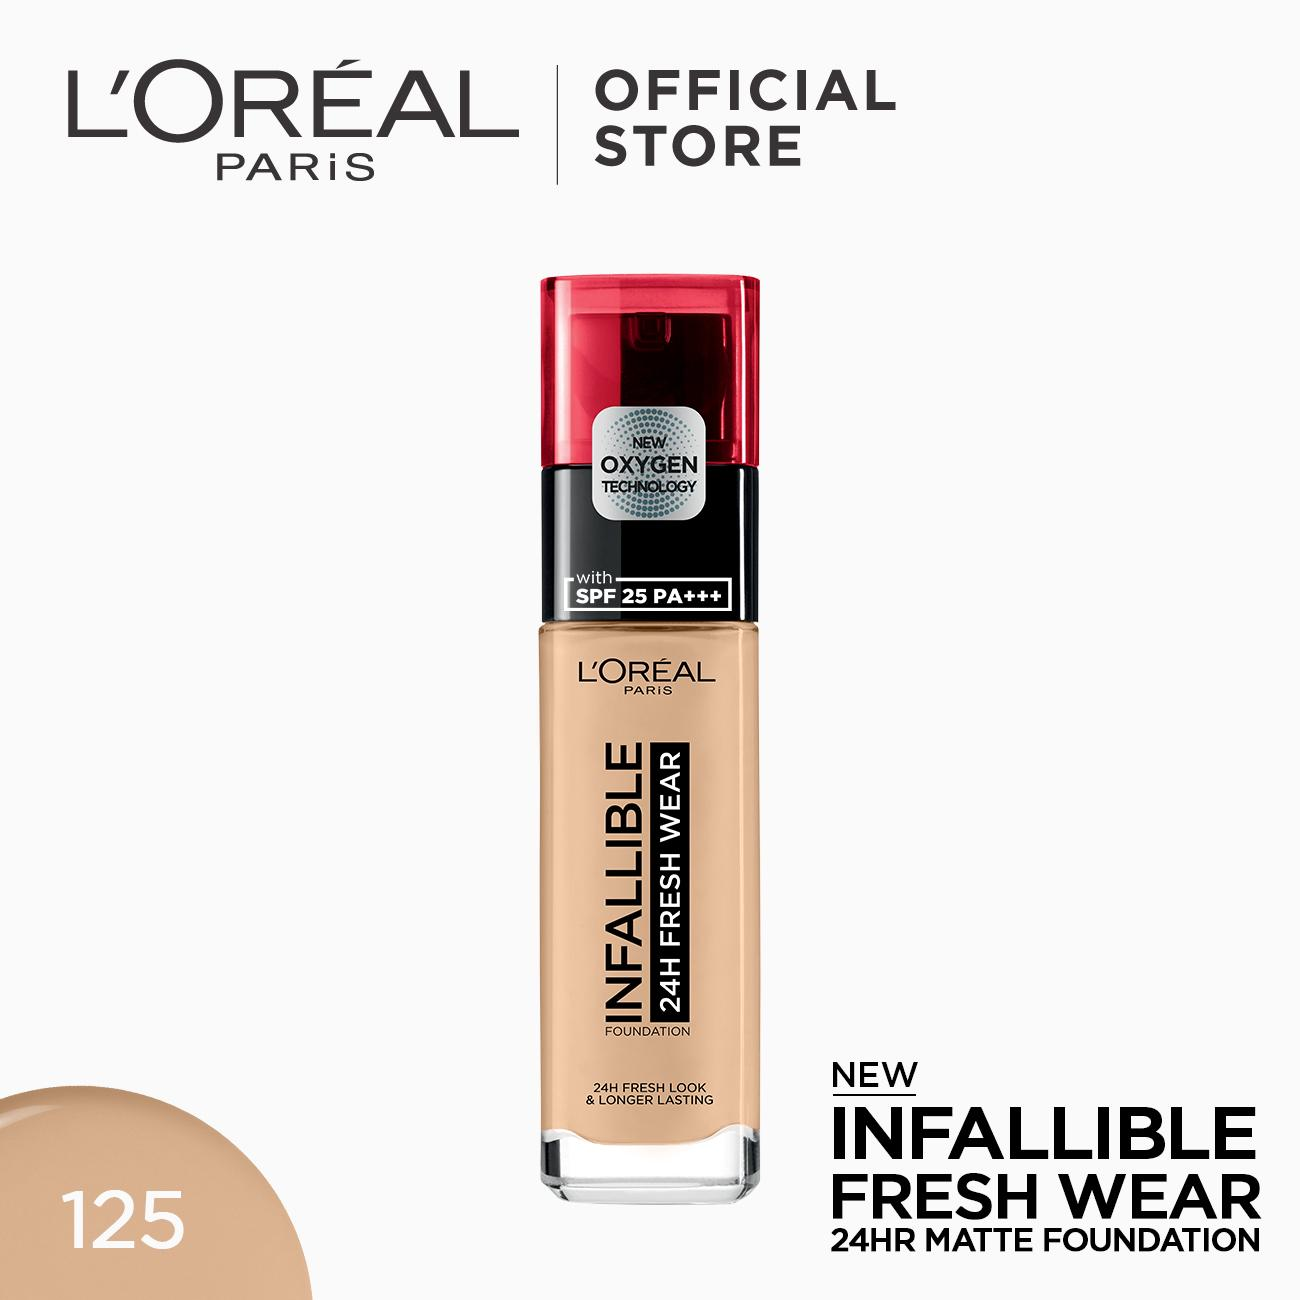 Infallible 24HR Fresh Wear Foundation by L'Oreal Paris